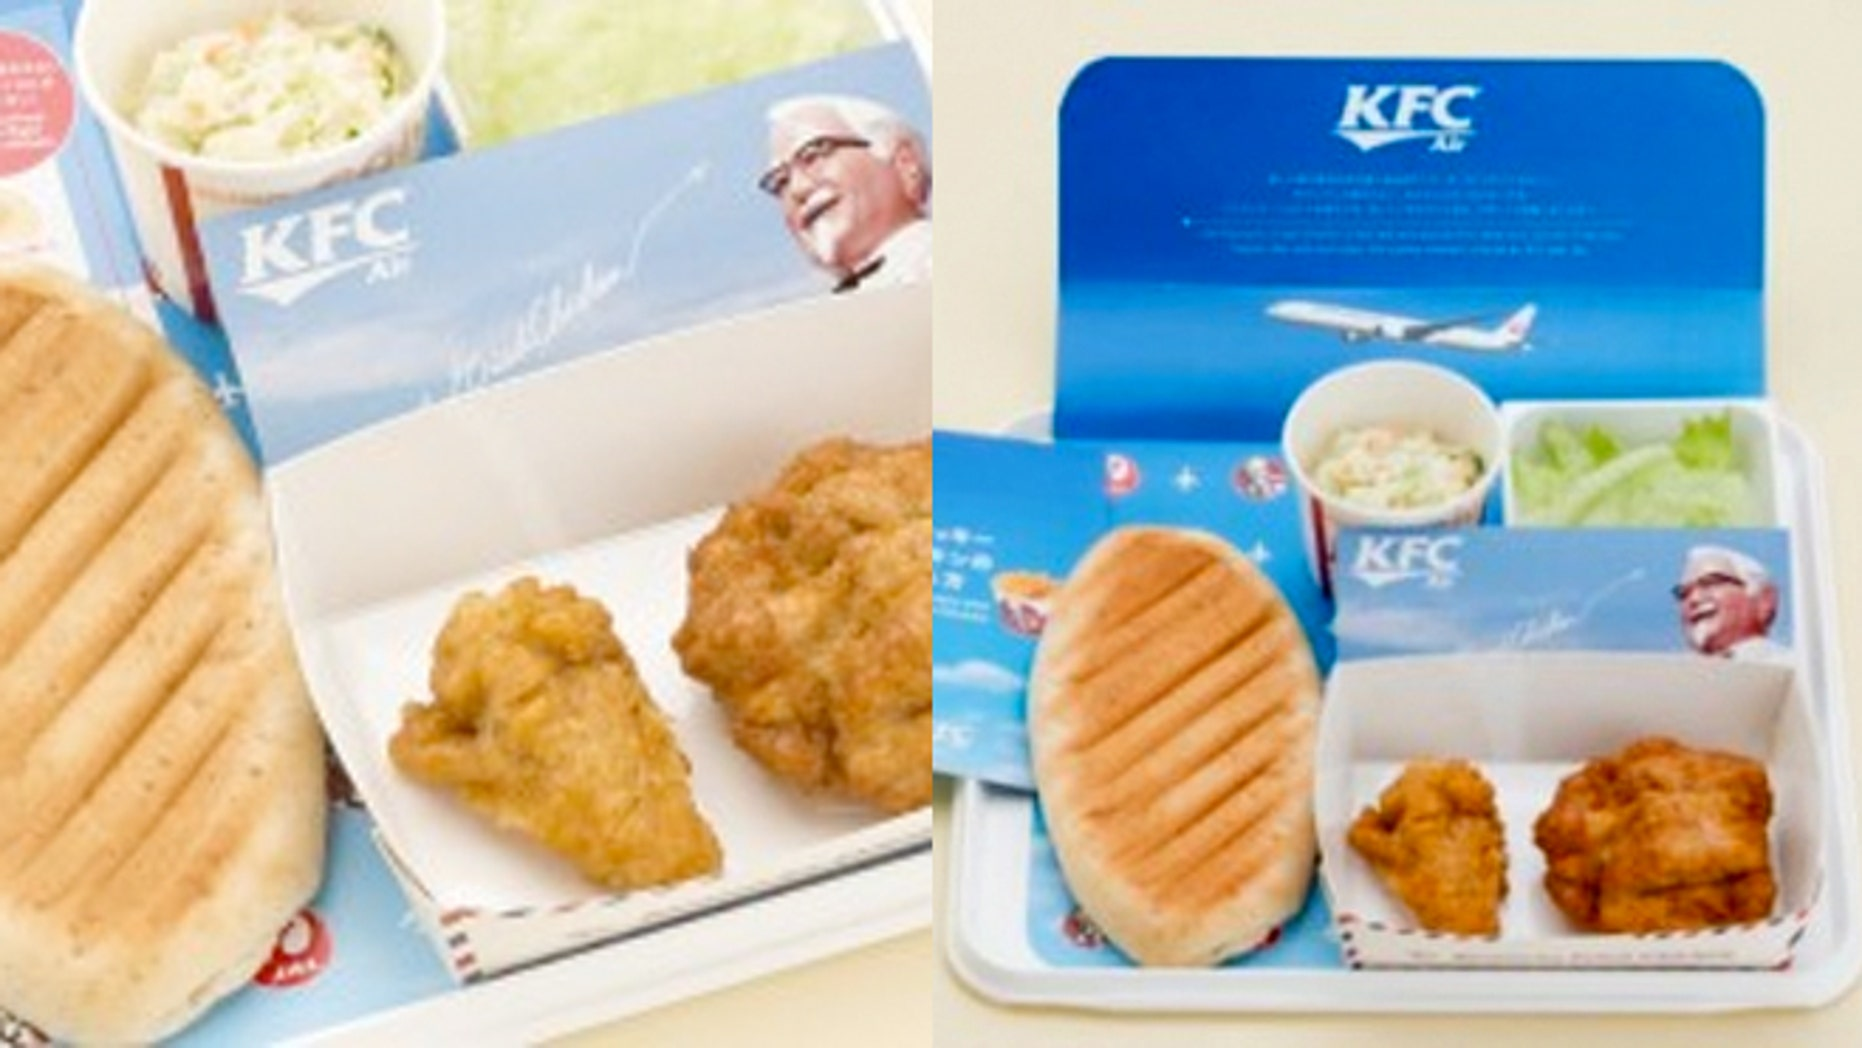 Japan Airlines will begin serving KFC on select holiday flights.